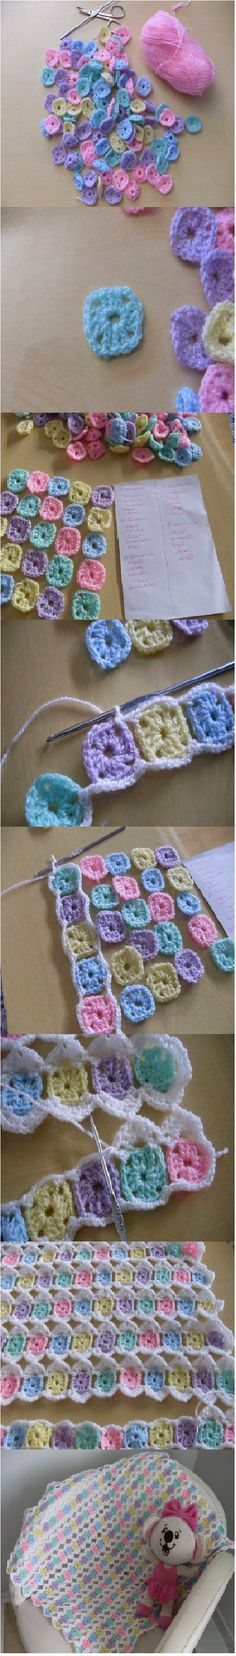 the cutest way ever to end you left-over yarn : the One-Round Granny crochet blanket!